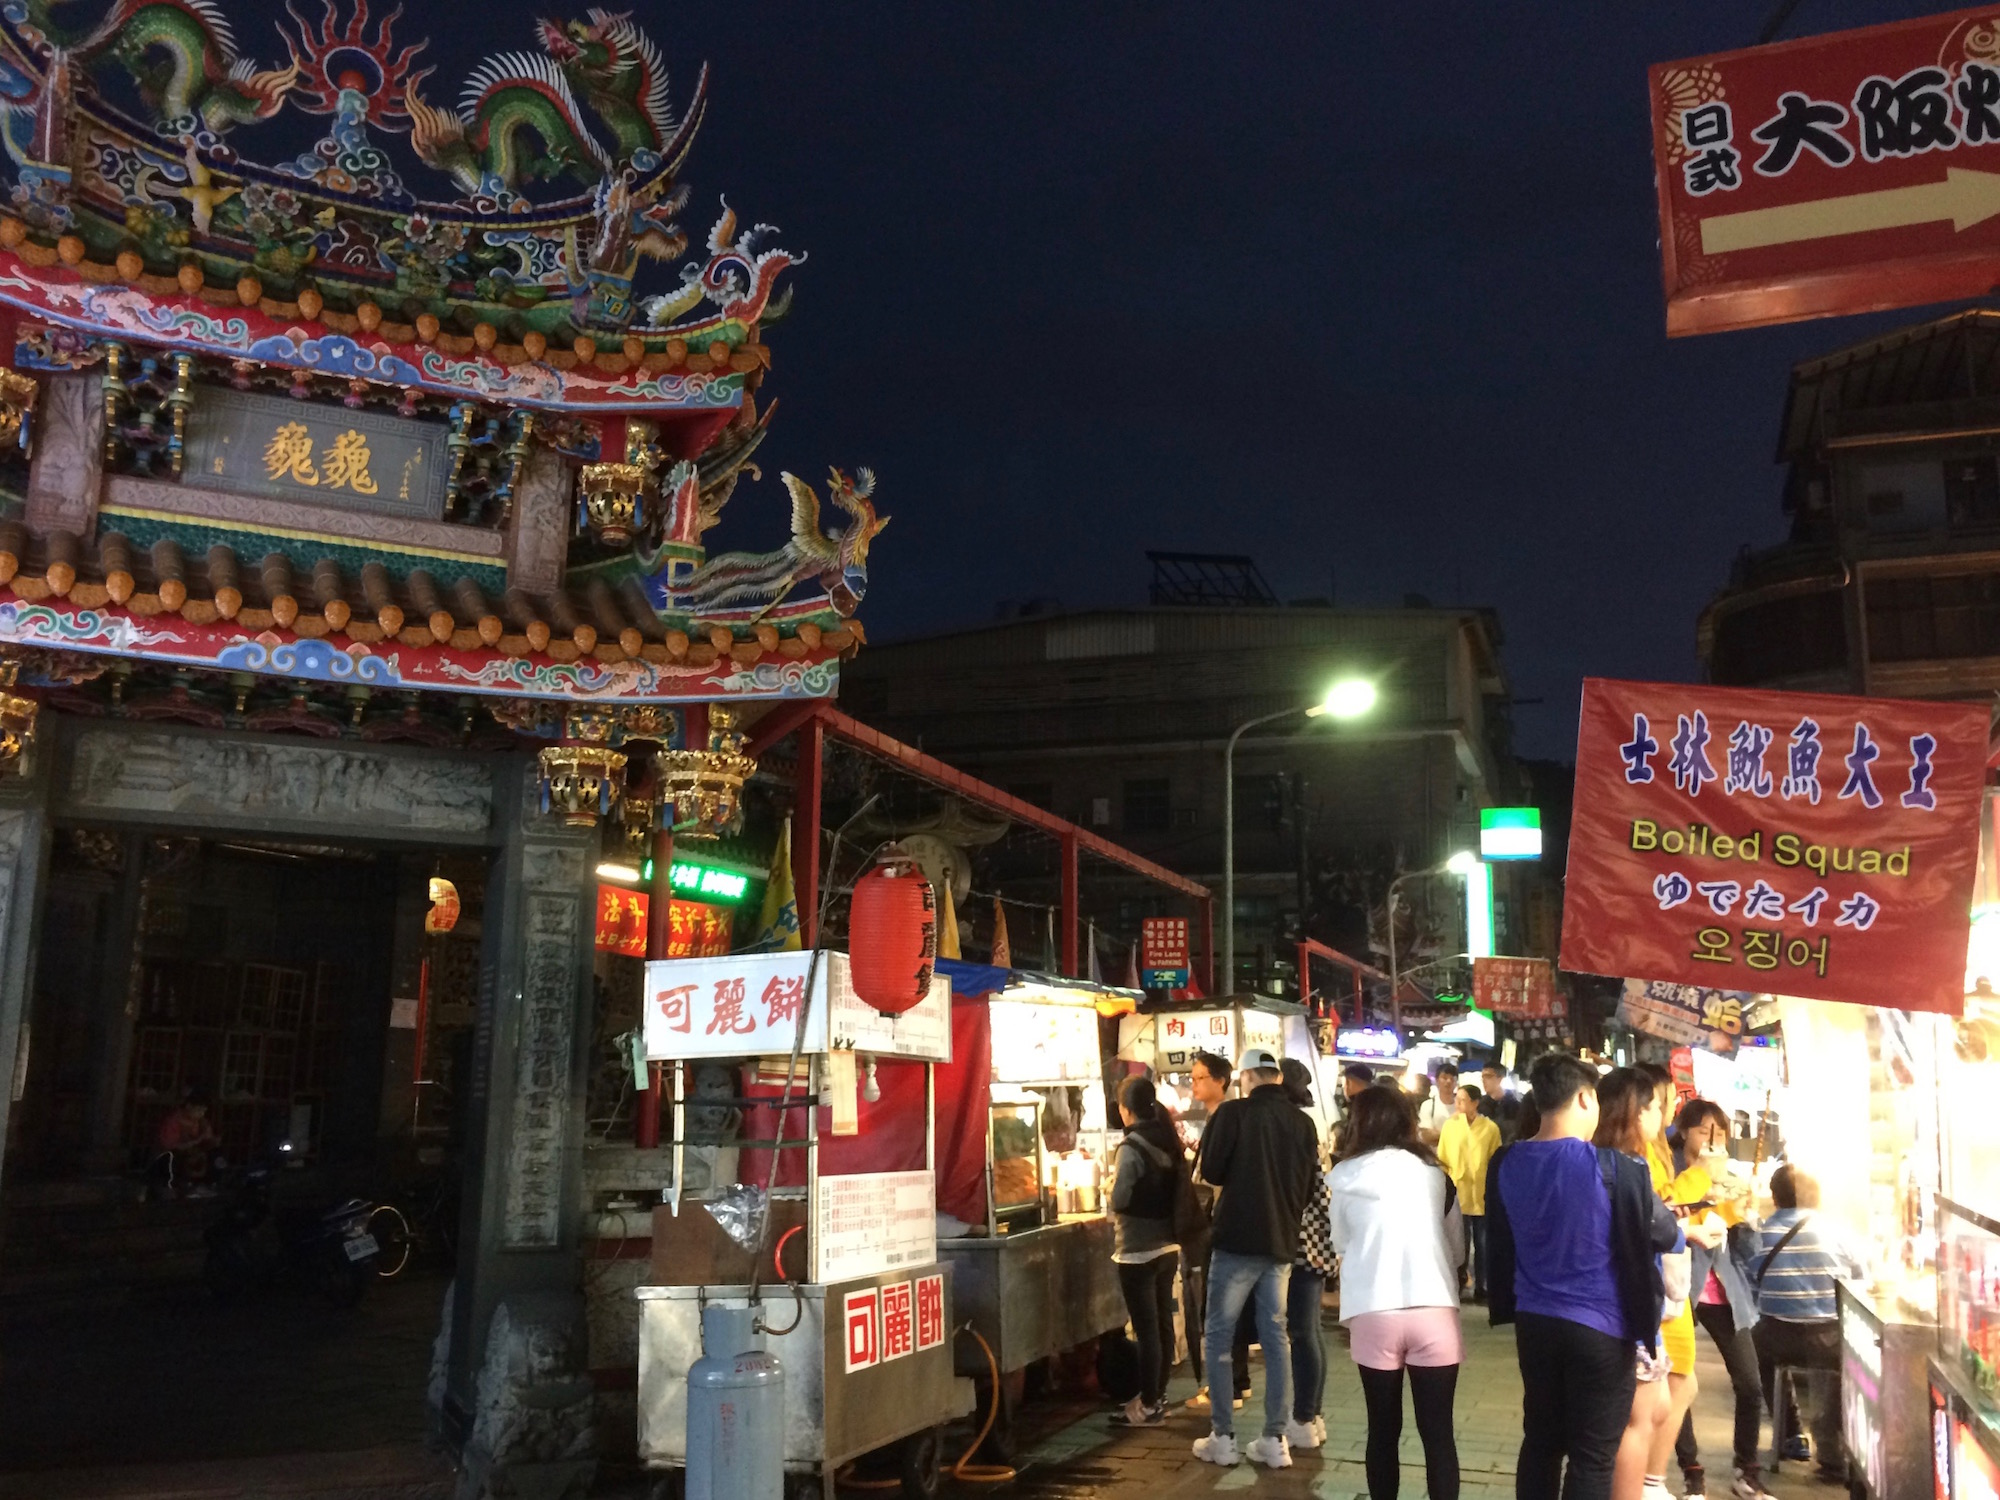 Carnival-like Night Markets are popular among both locals and tourists for sampling Taiwan's famous street food